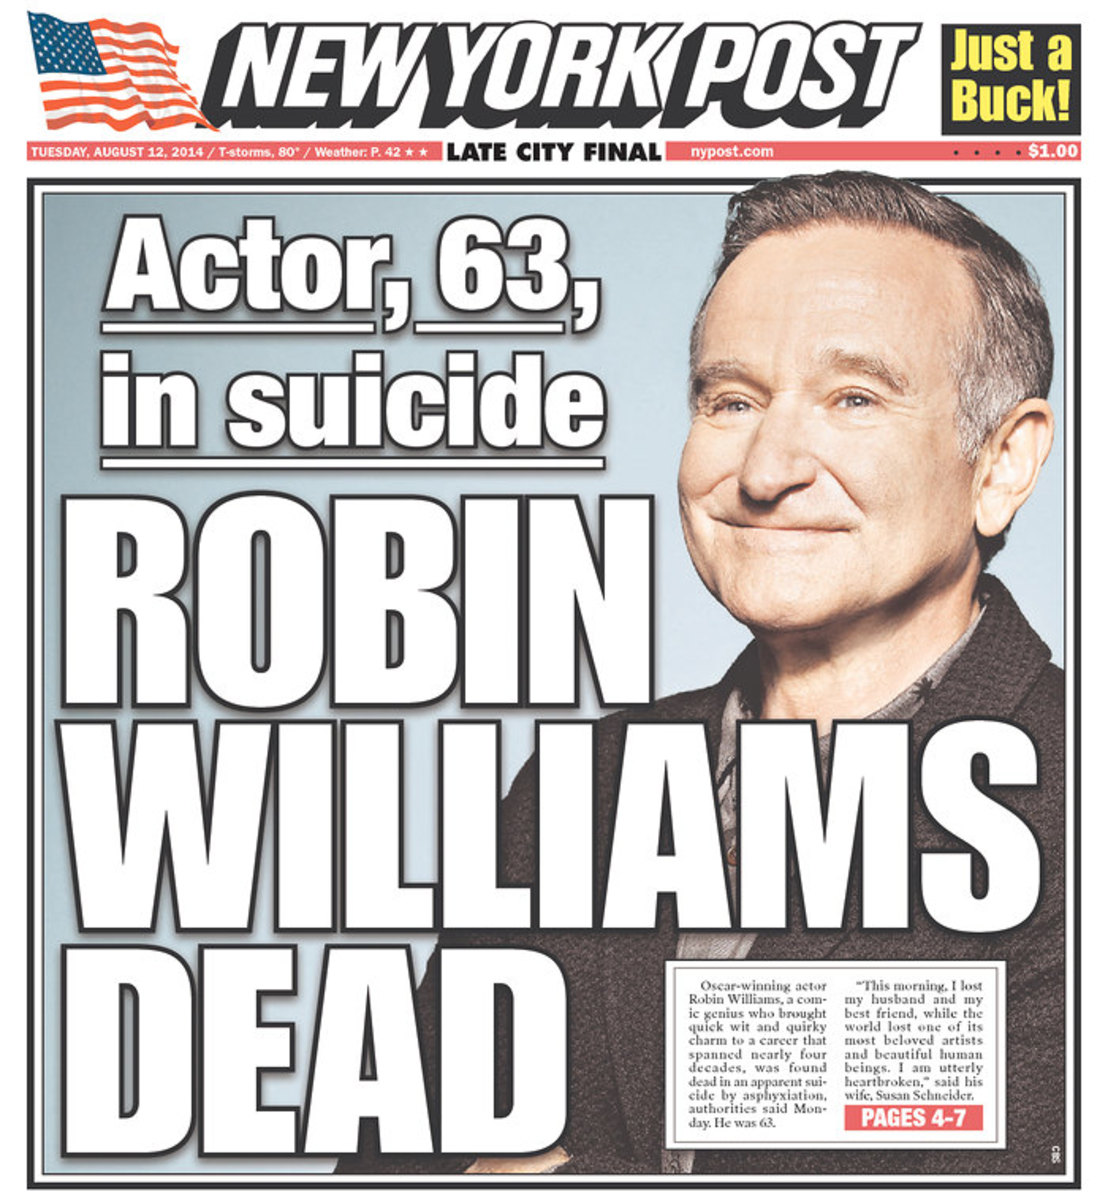 NY Post story about death of Robin Williams